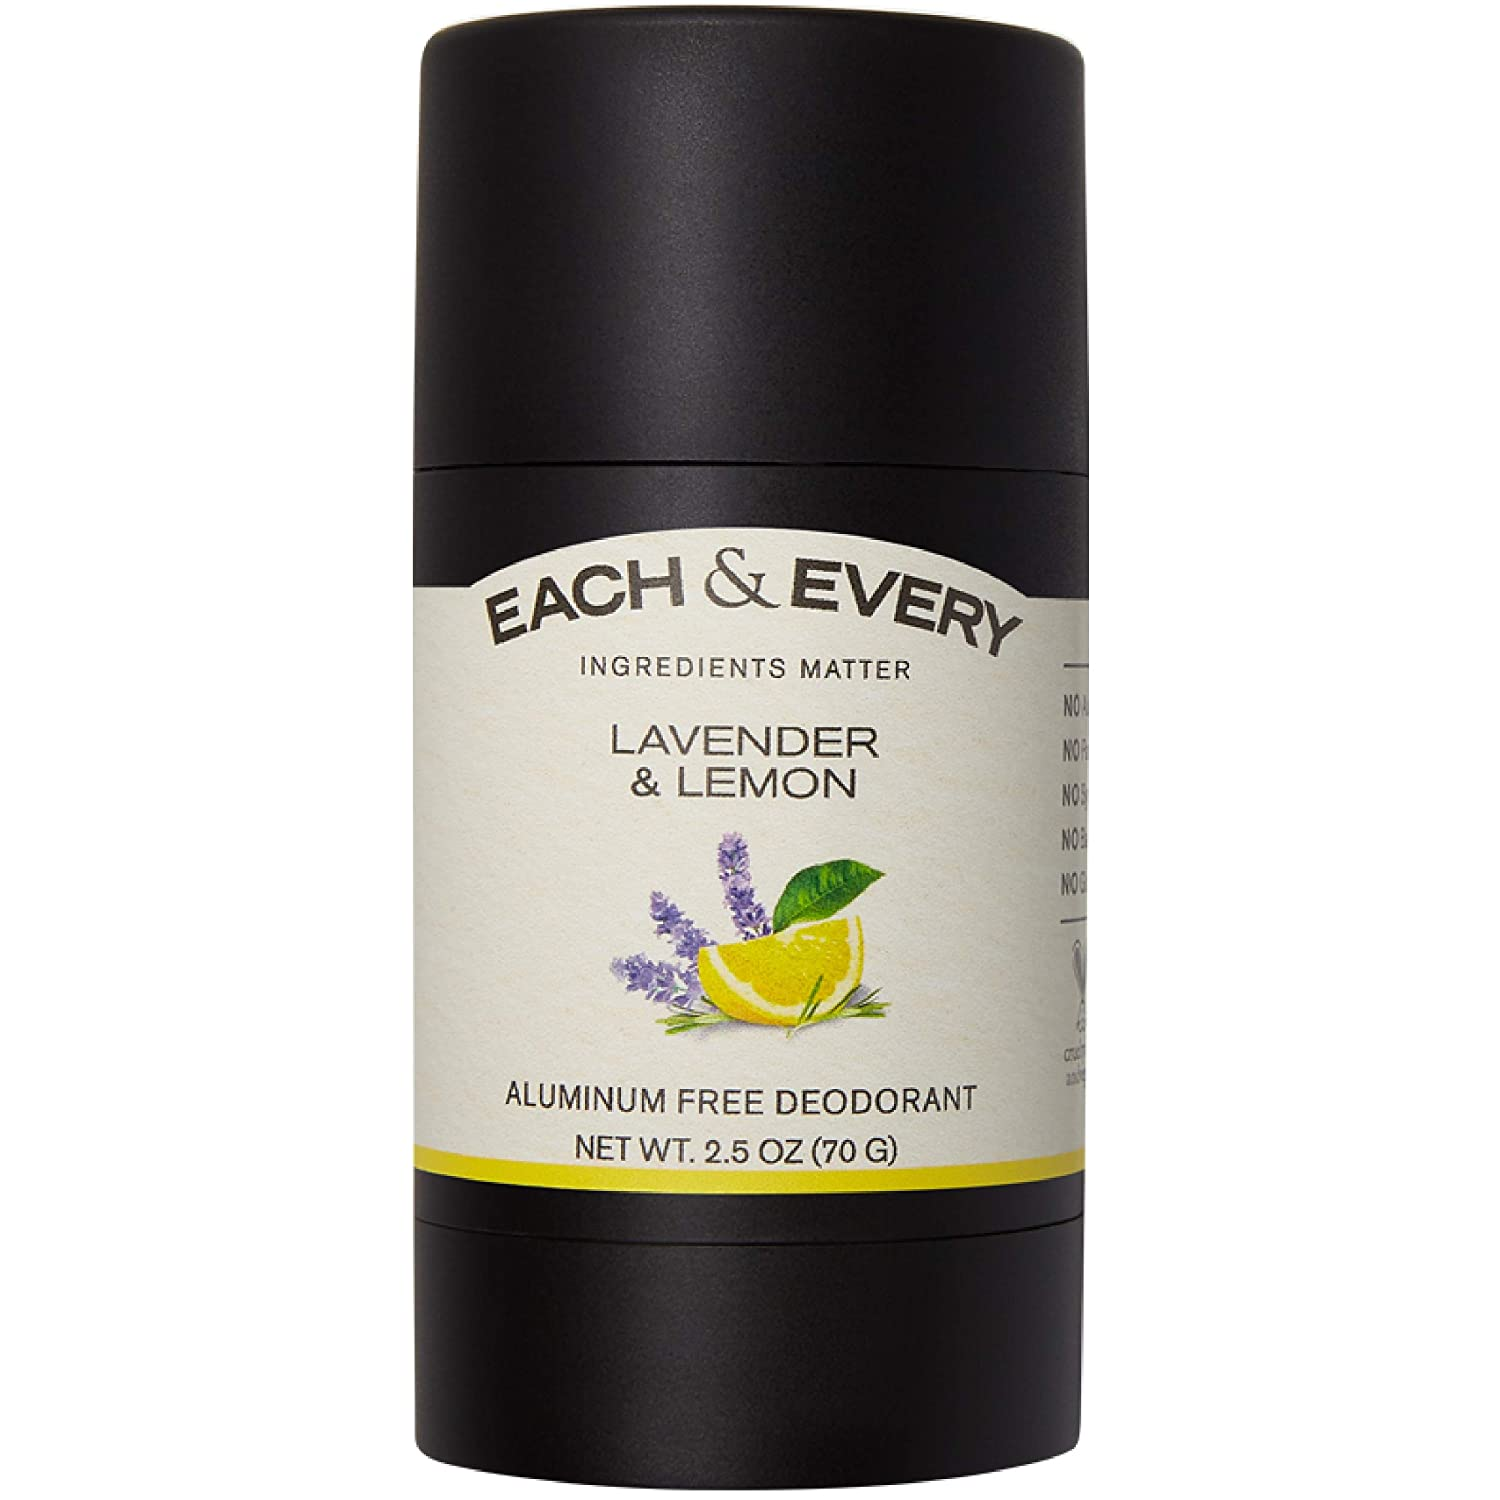 Each & Every All Natural Aluminum Free Deodorant for Women and Men, Cruelty Free Vegan Deodorant with Essential Oils, Non-Toxic, Paraben Free, Lavender Lemon, 2.5 Oz.